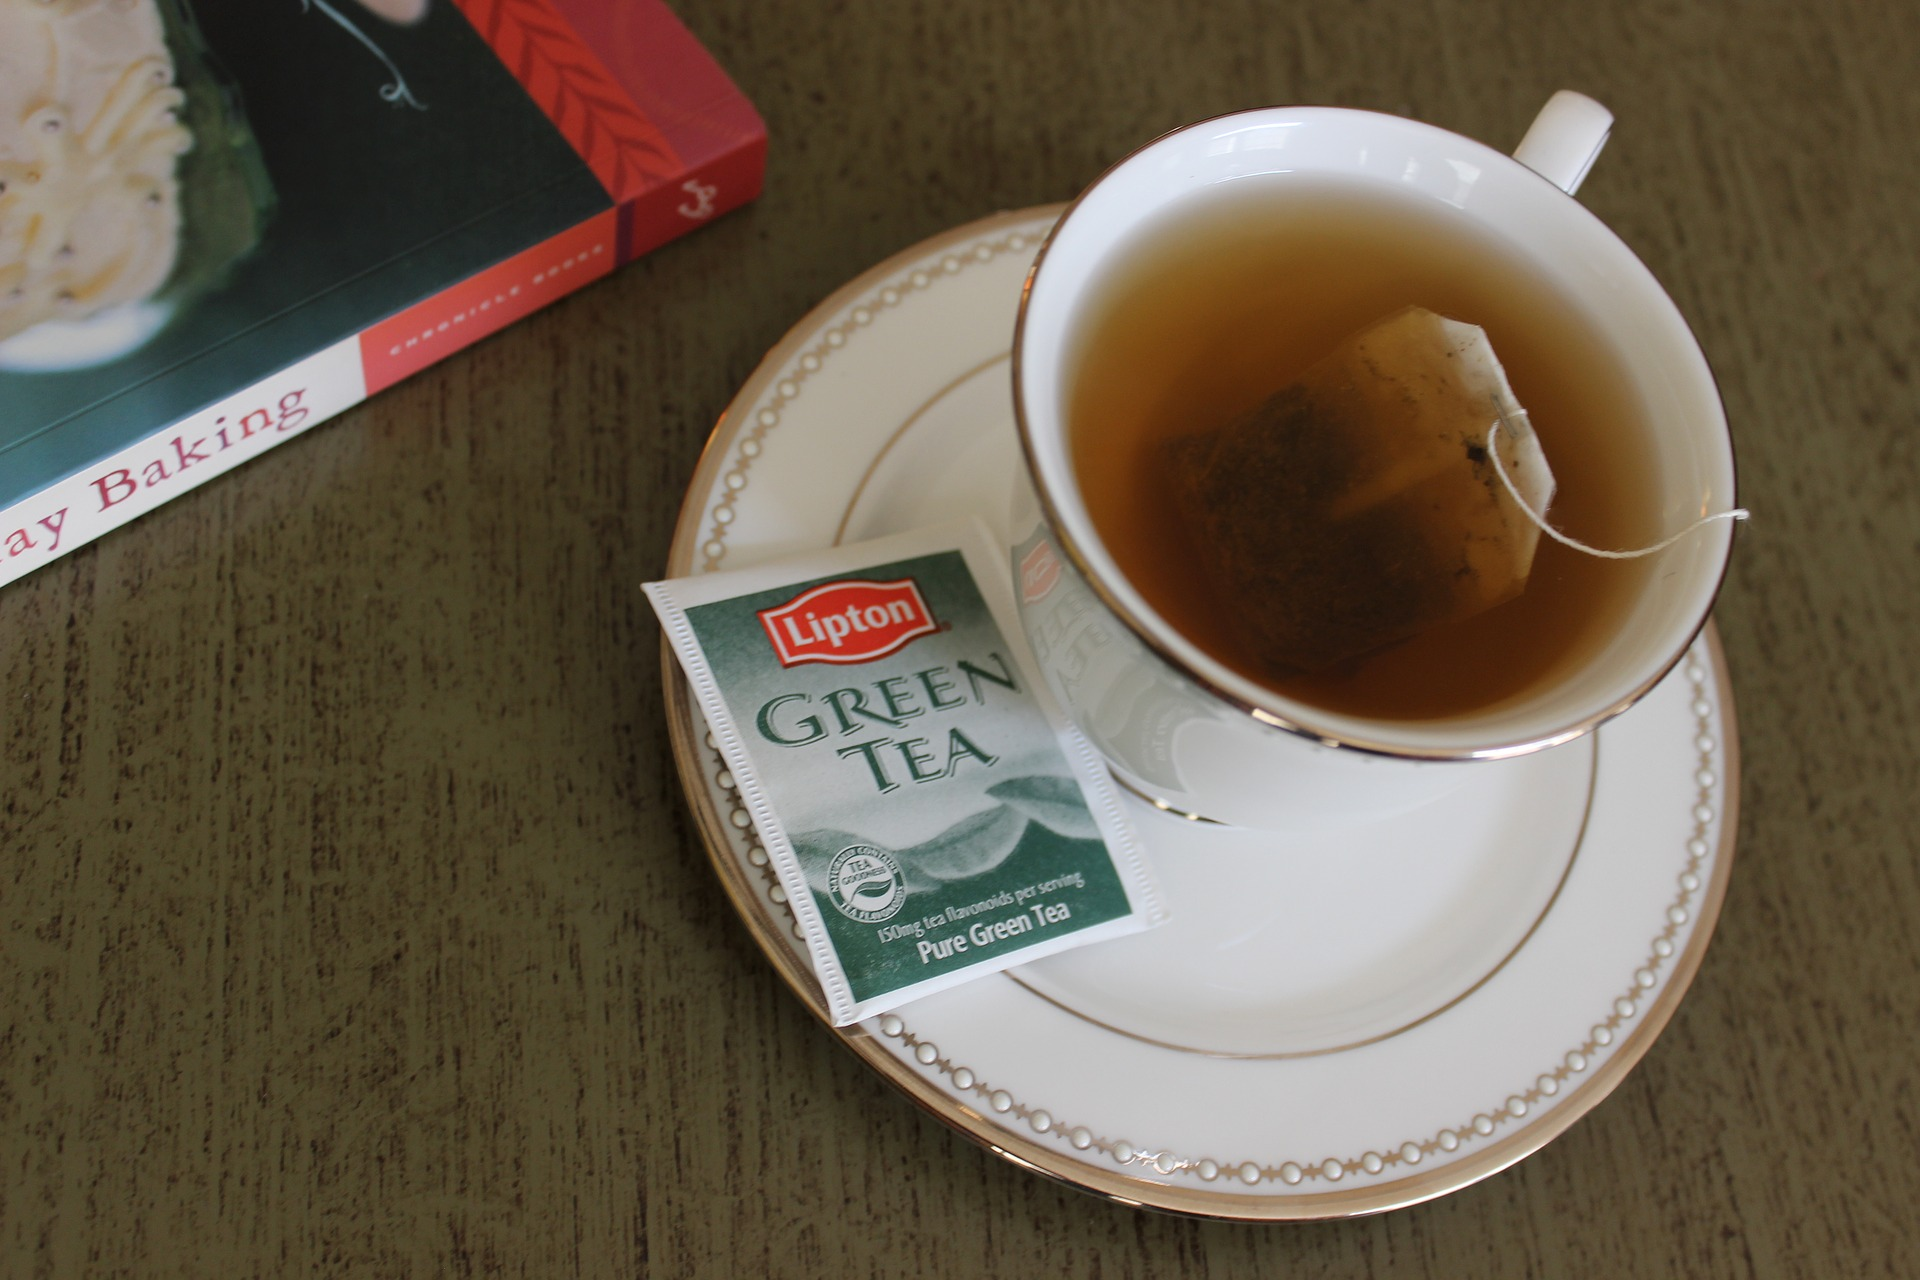 Drink this tea for a month and here's what's going to happen